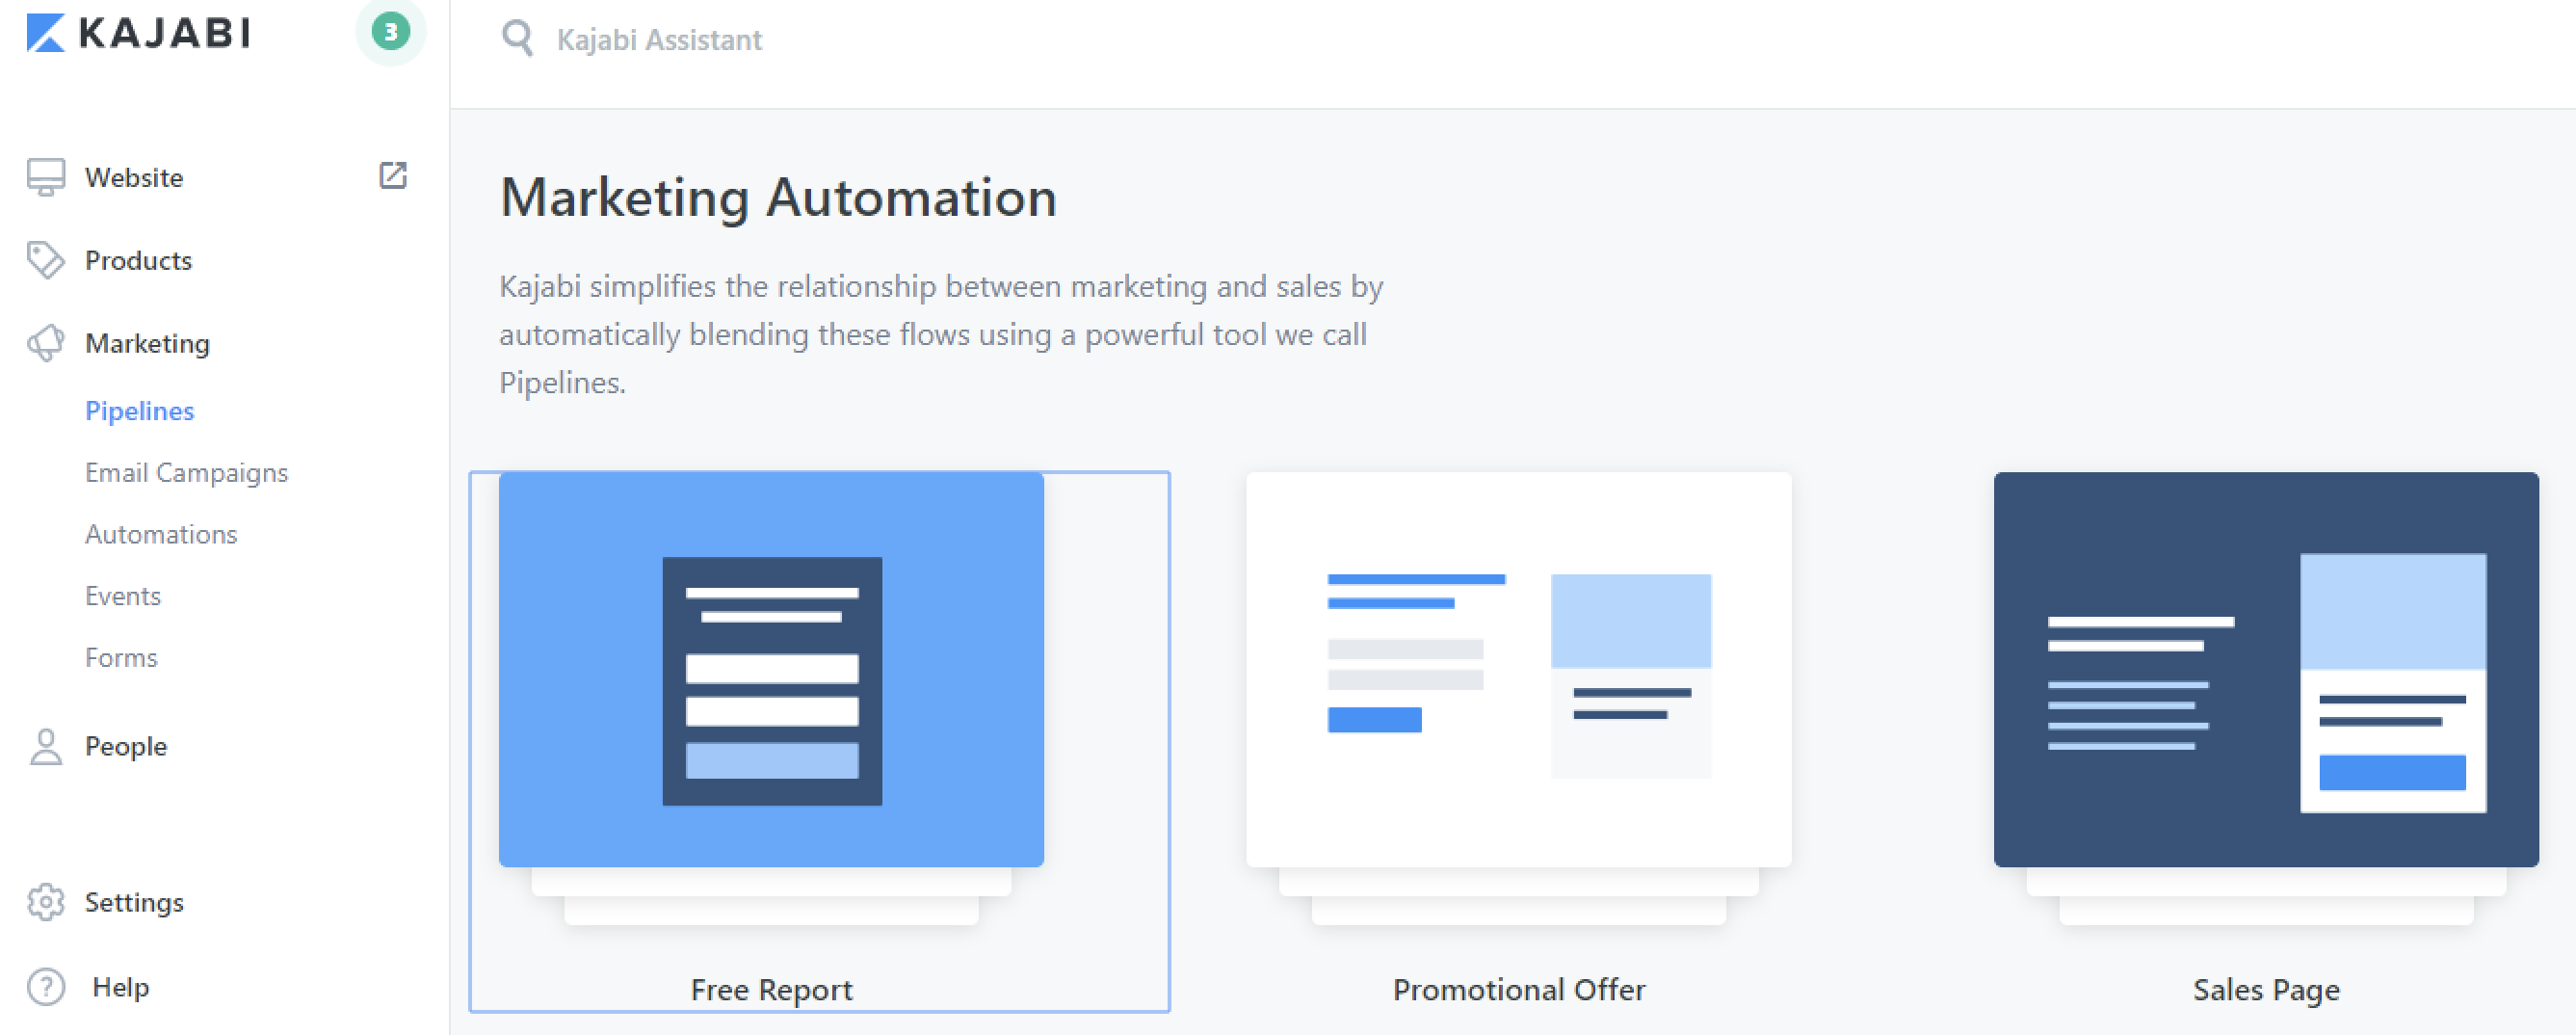 Kajabi marketing automation page